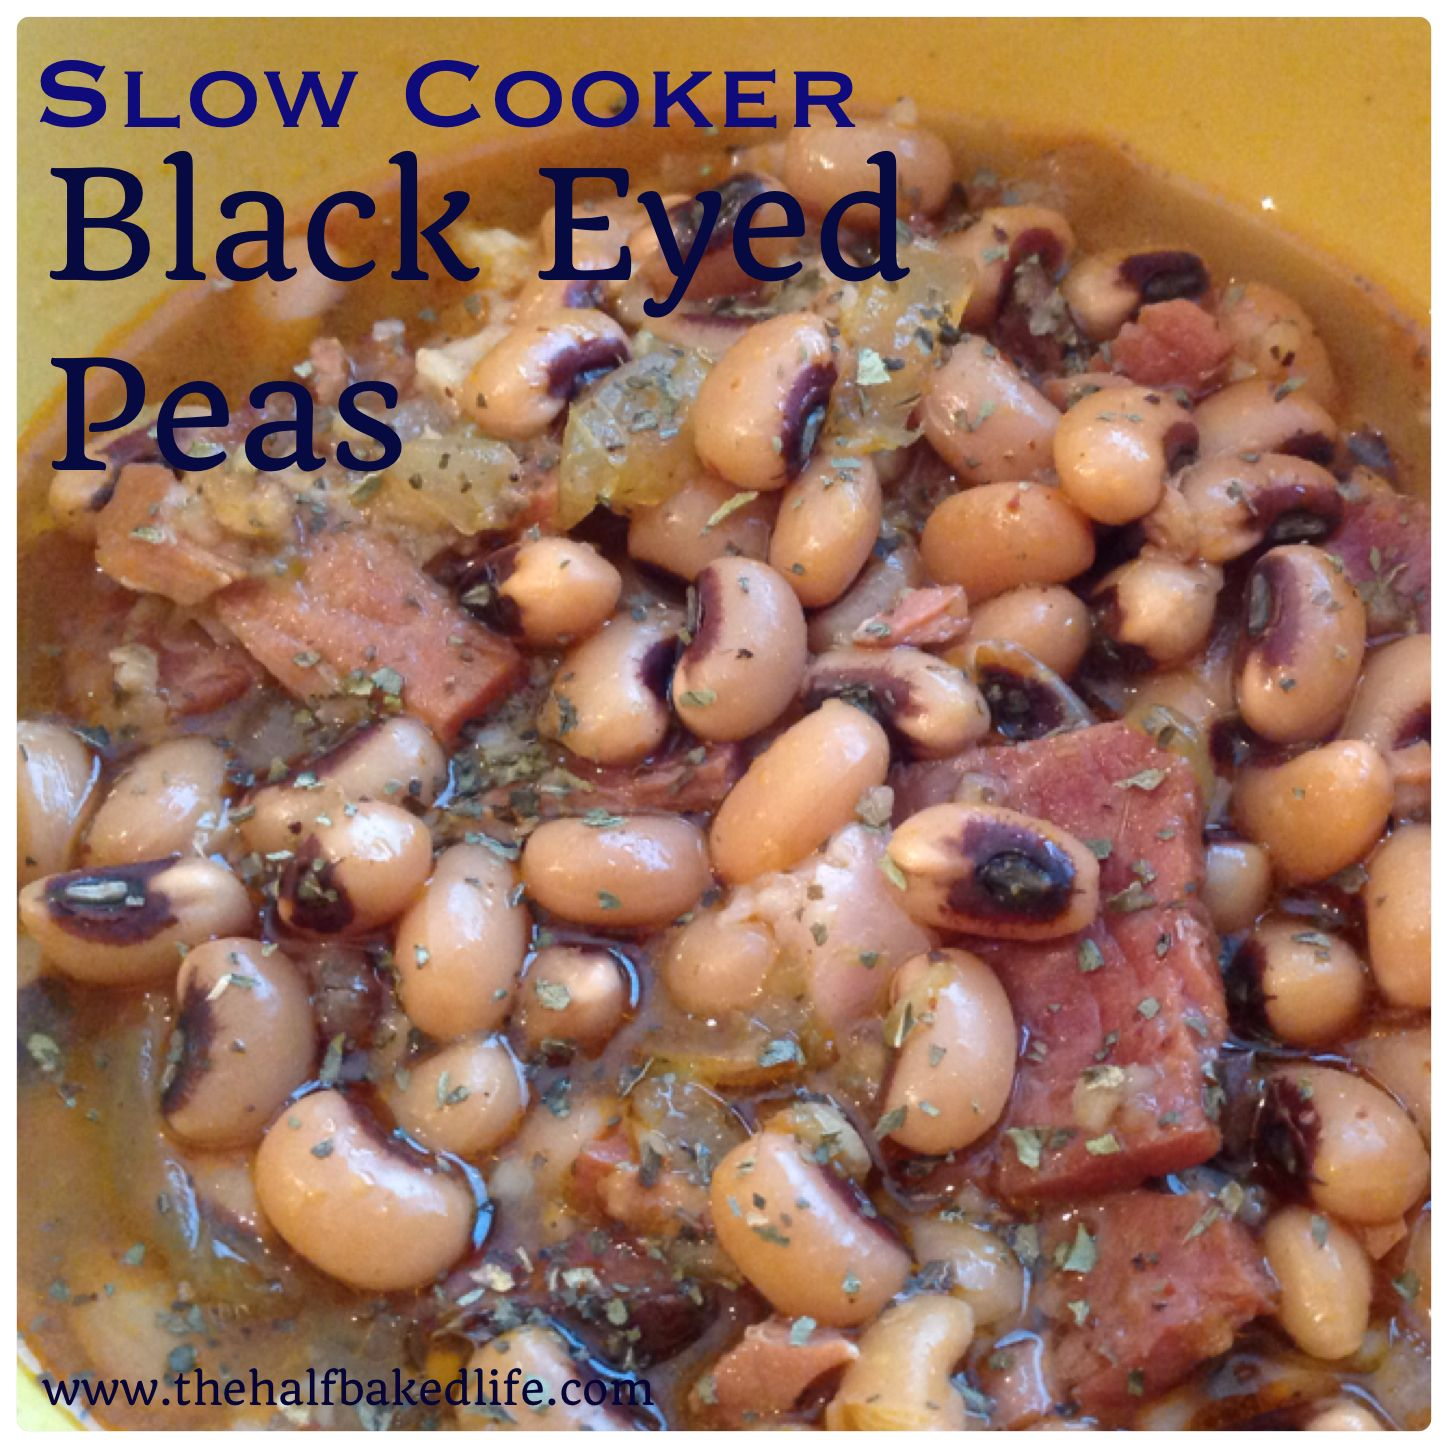 New Year's Black Eyed Peas (Slow Cooker) Black eyed peas